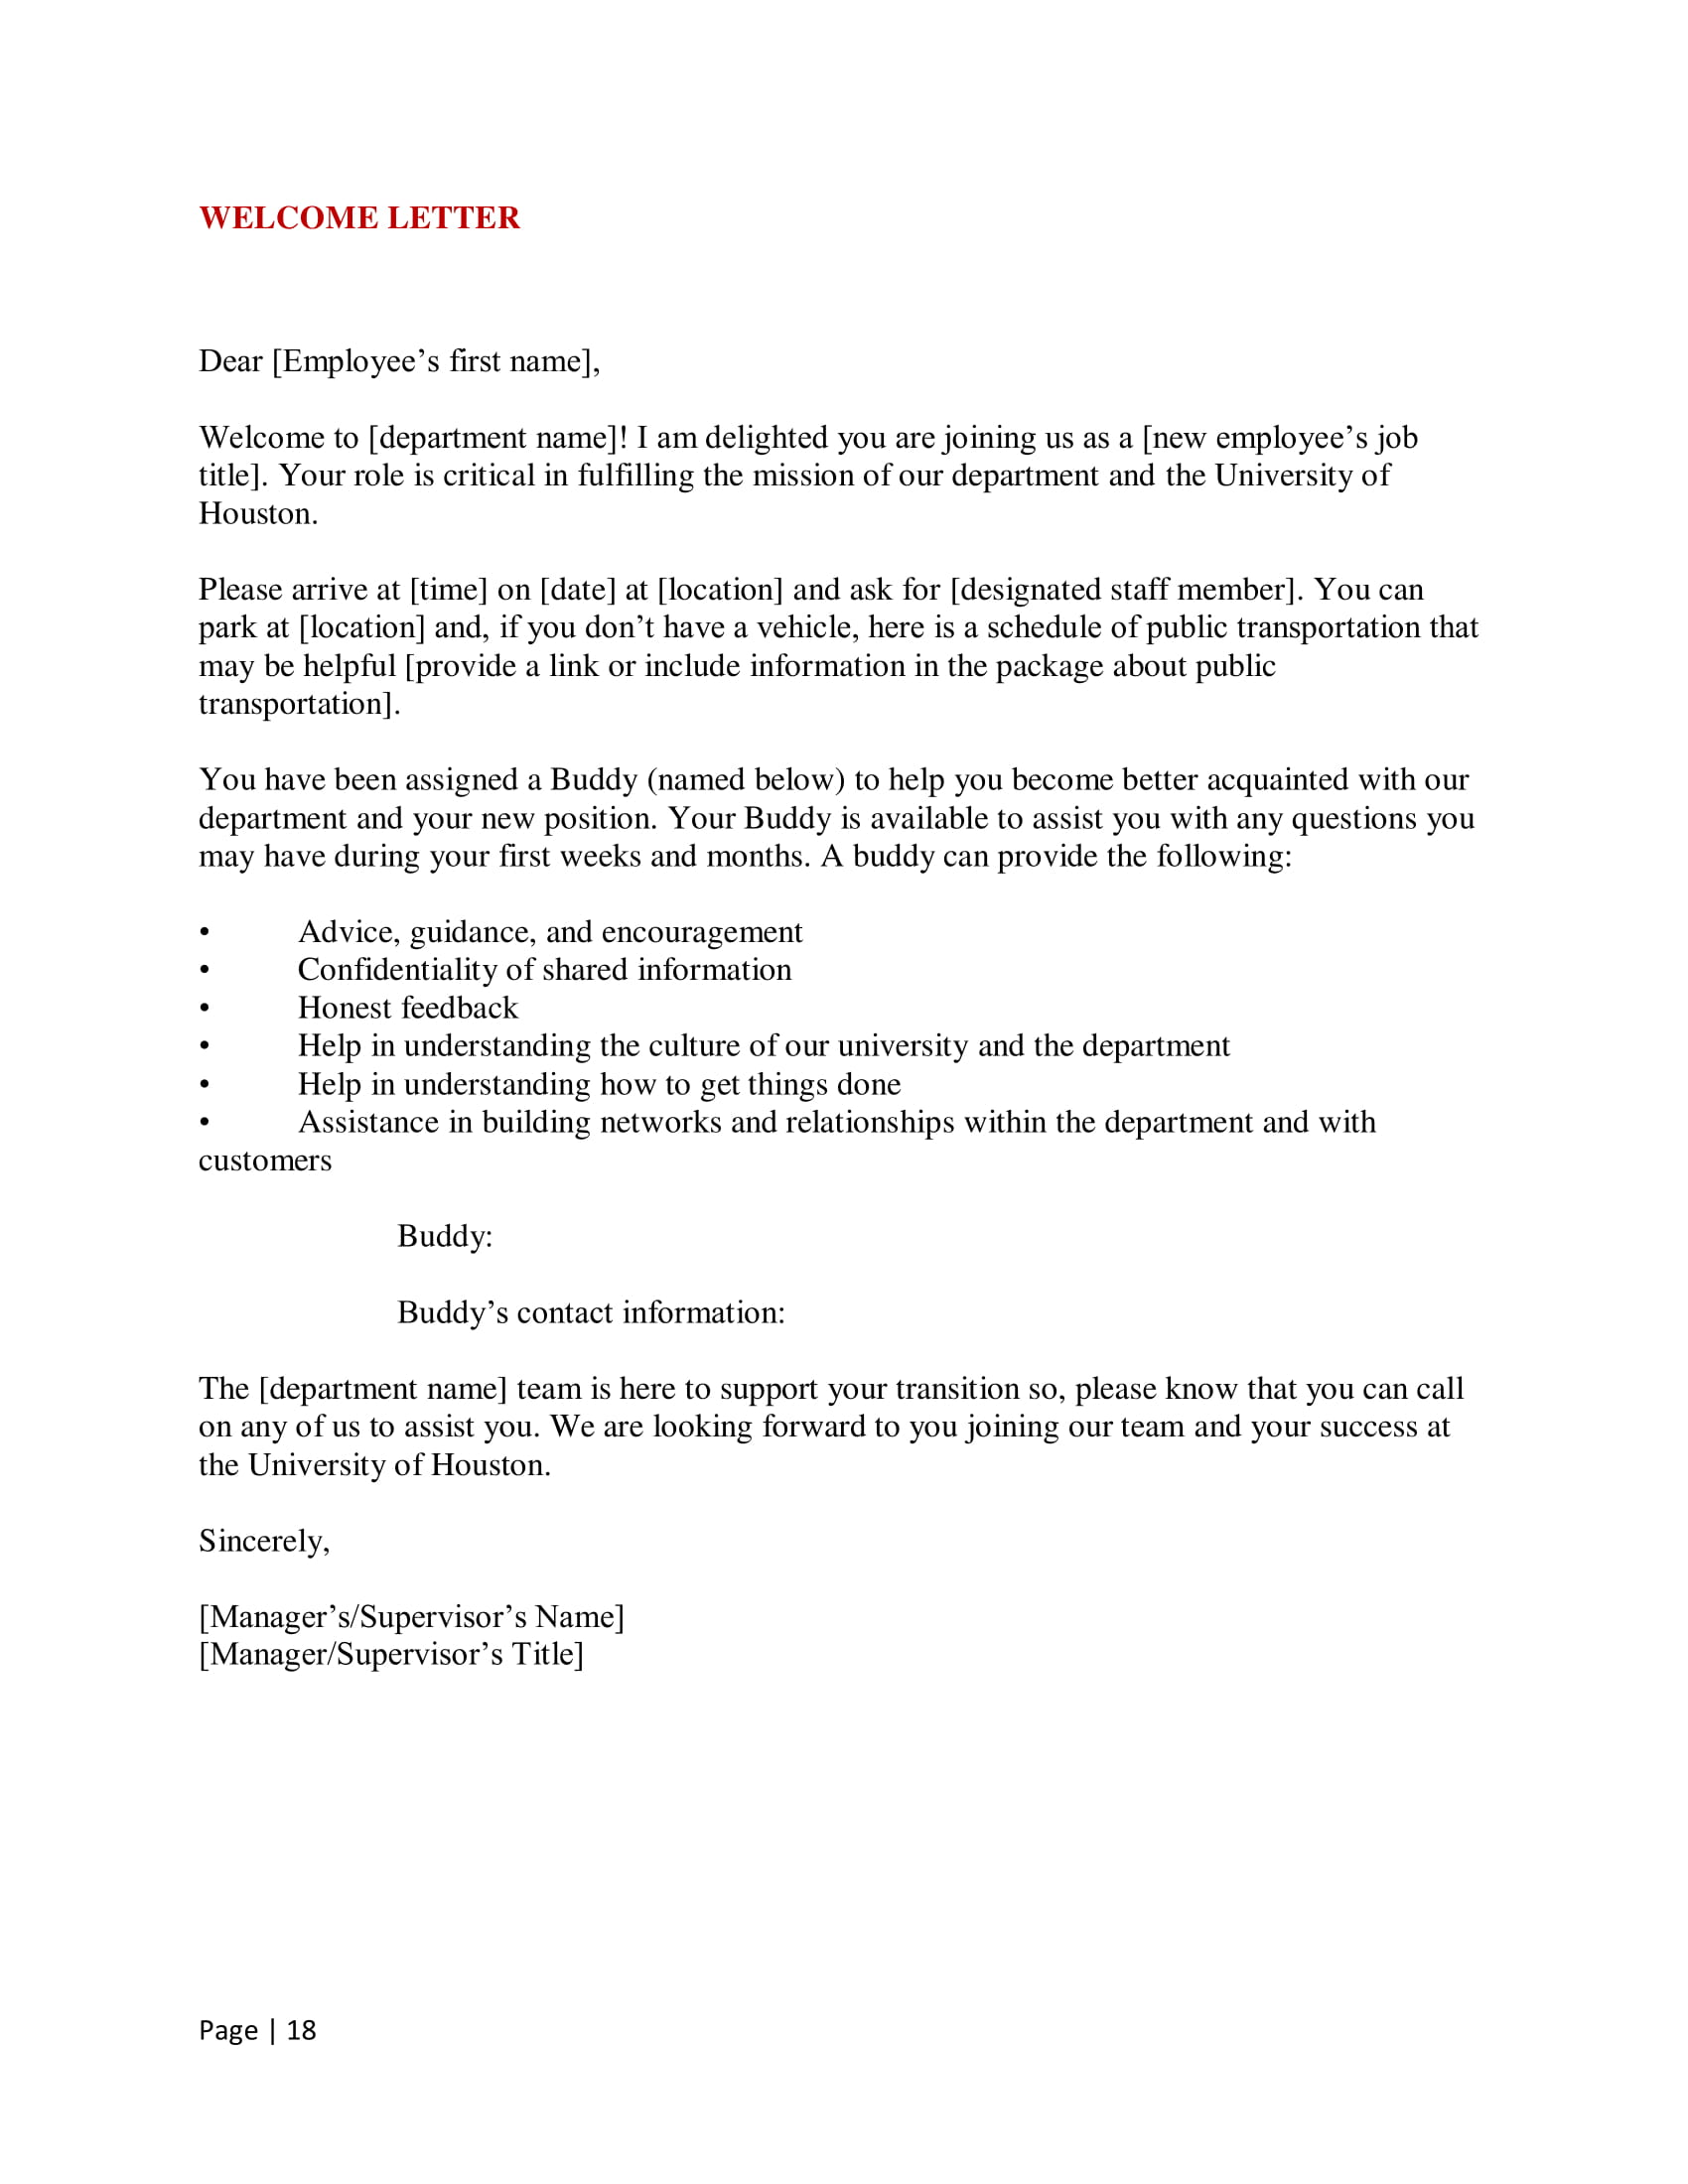 New Hire Welcome Letter - Teacheng.Us